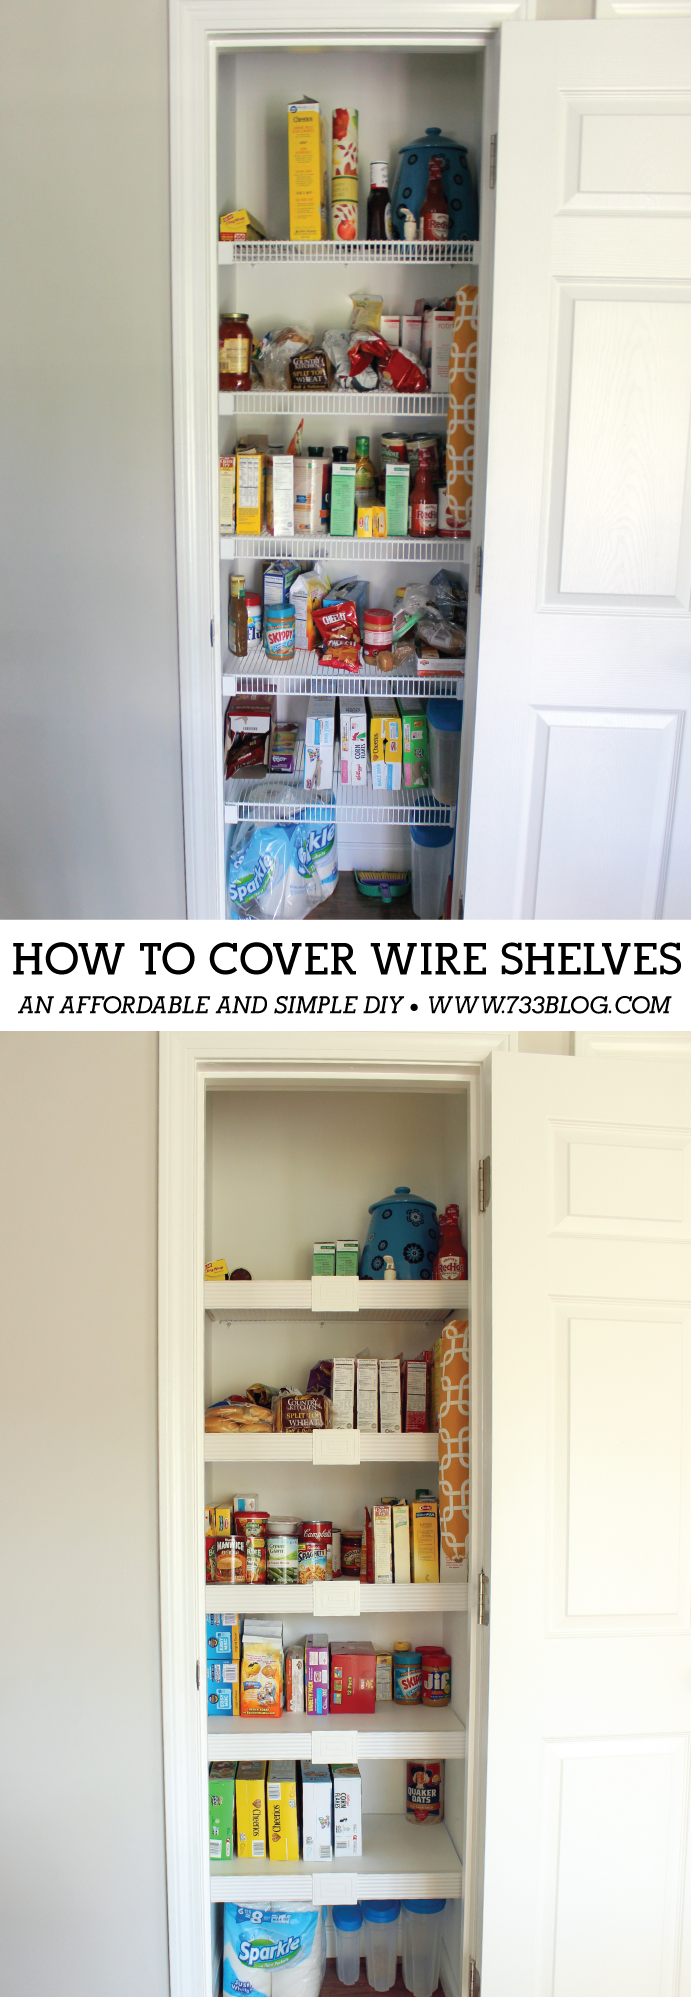 How to cover your wire shelves - an affordable and simple DIY